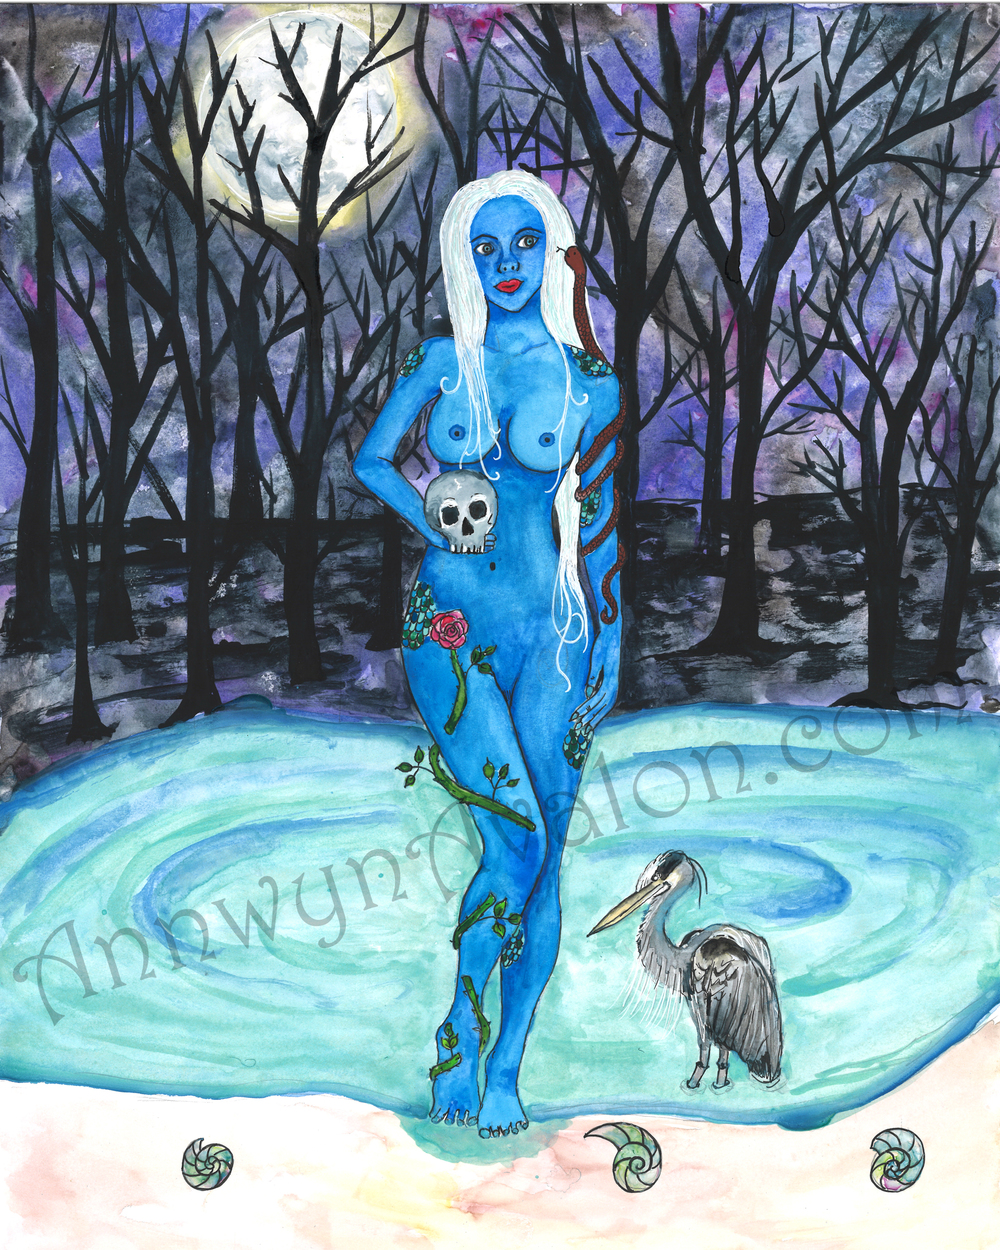 Birth of Water Girl Watermark.jpg